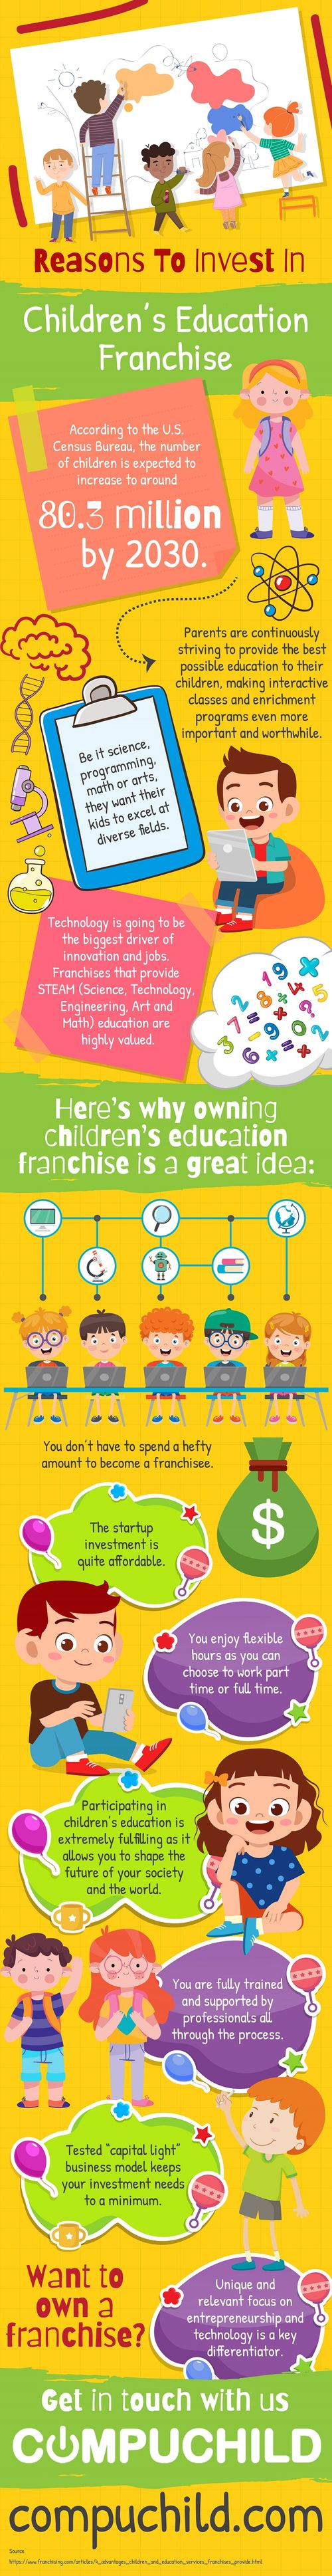 Reasons to invest in children's education franchise.jpg